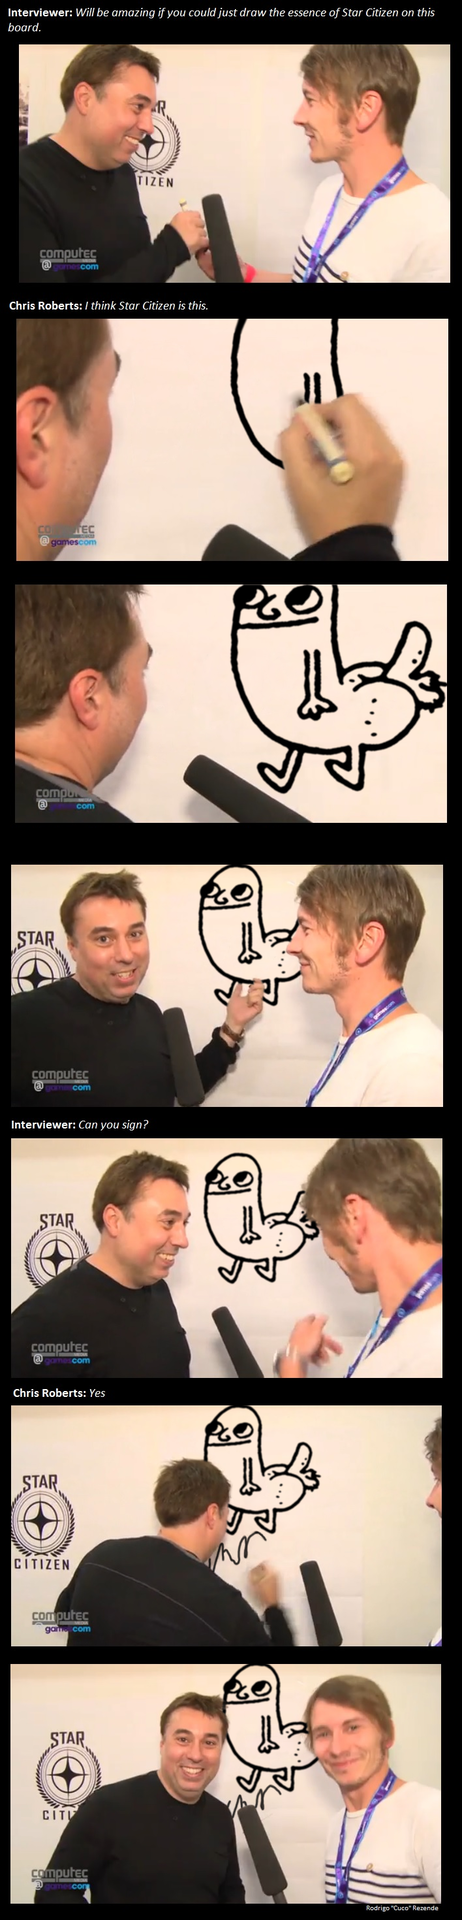 star citizen gamescom 2014 dickbutt